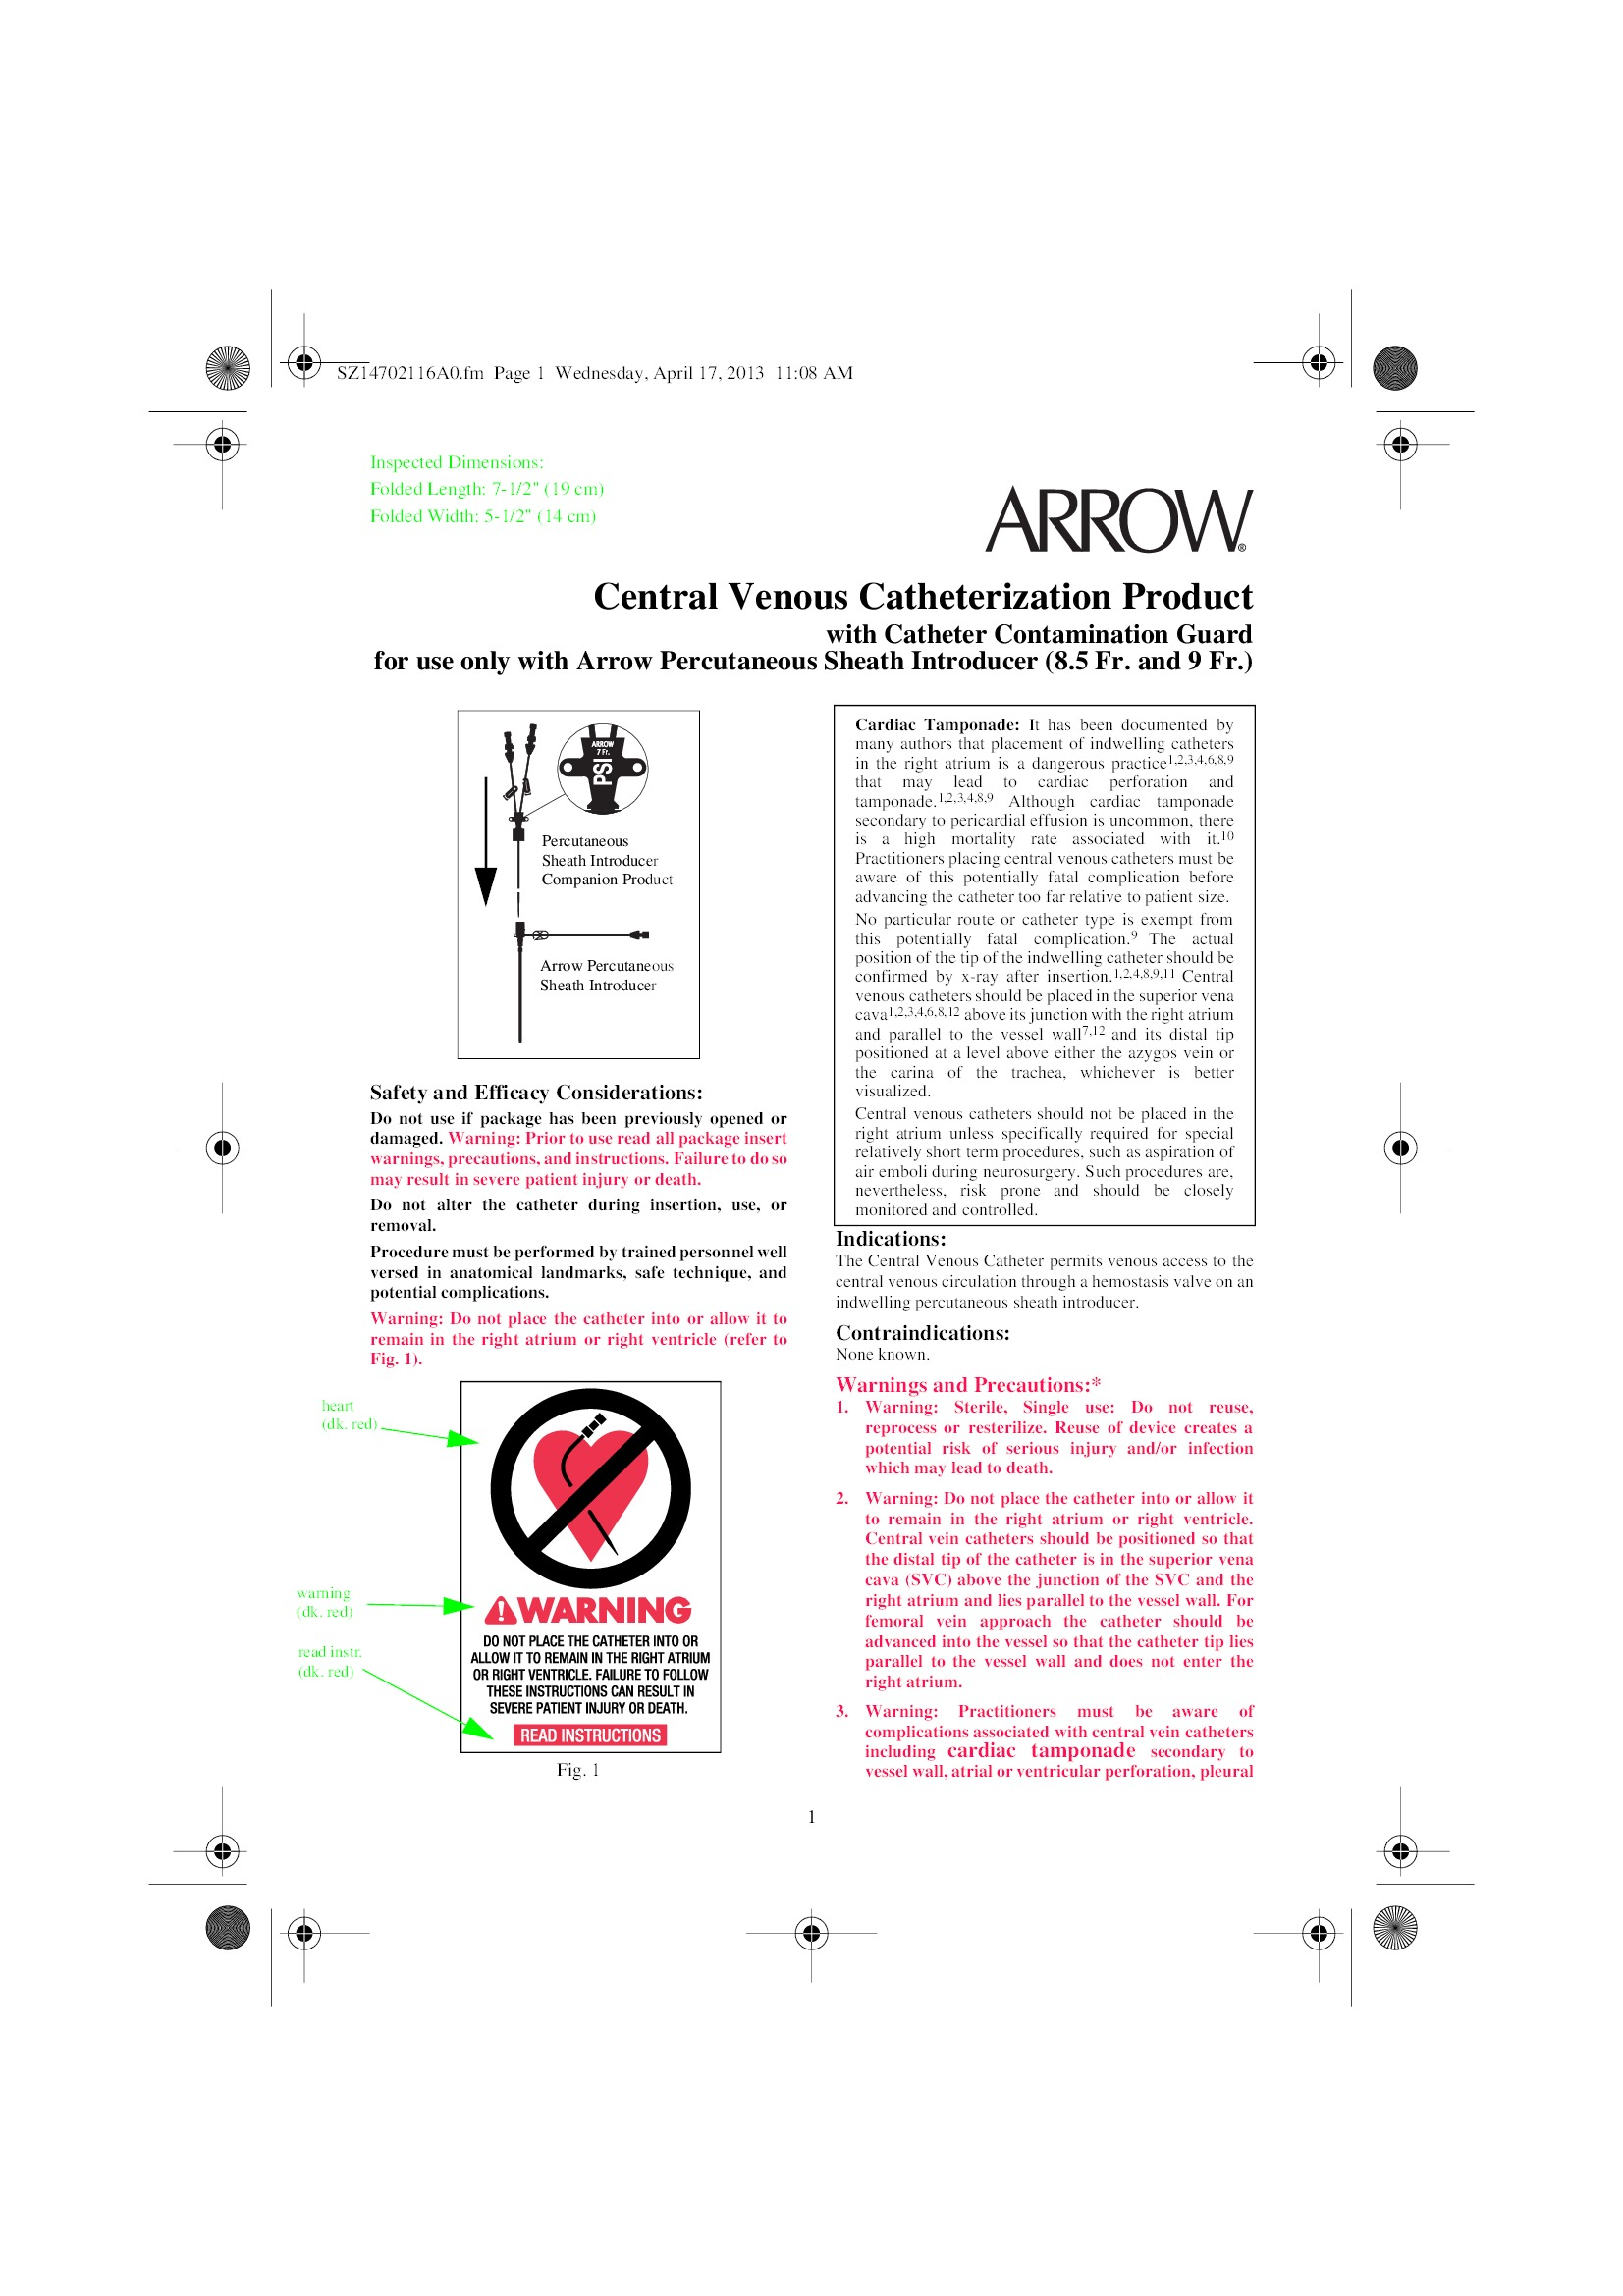 SS-14702 - Teleflex Incorporated - Vascular Access Product